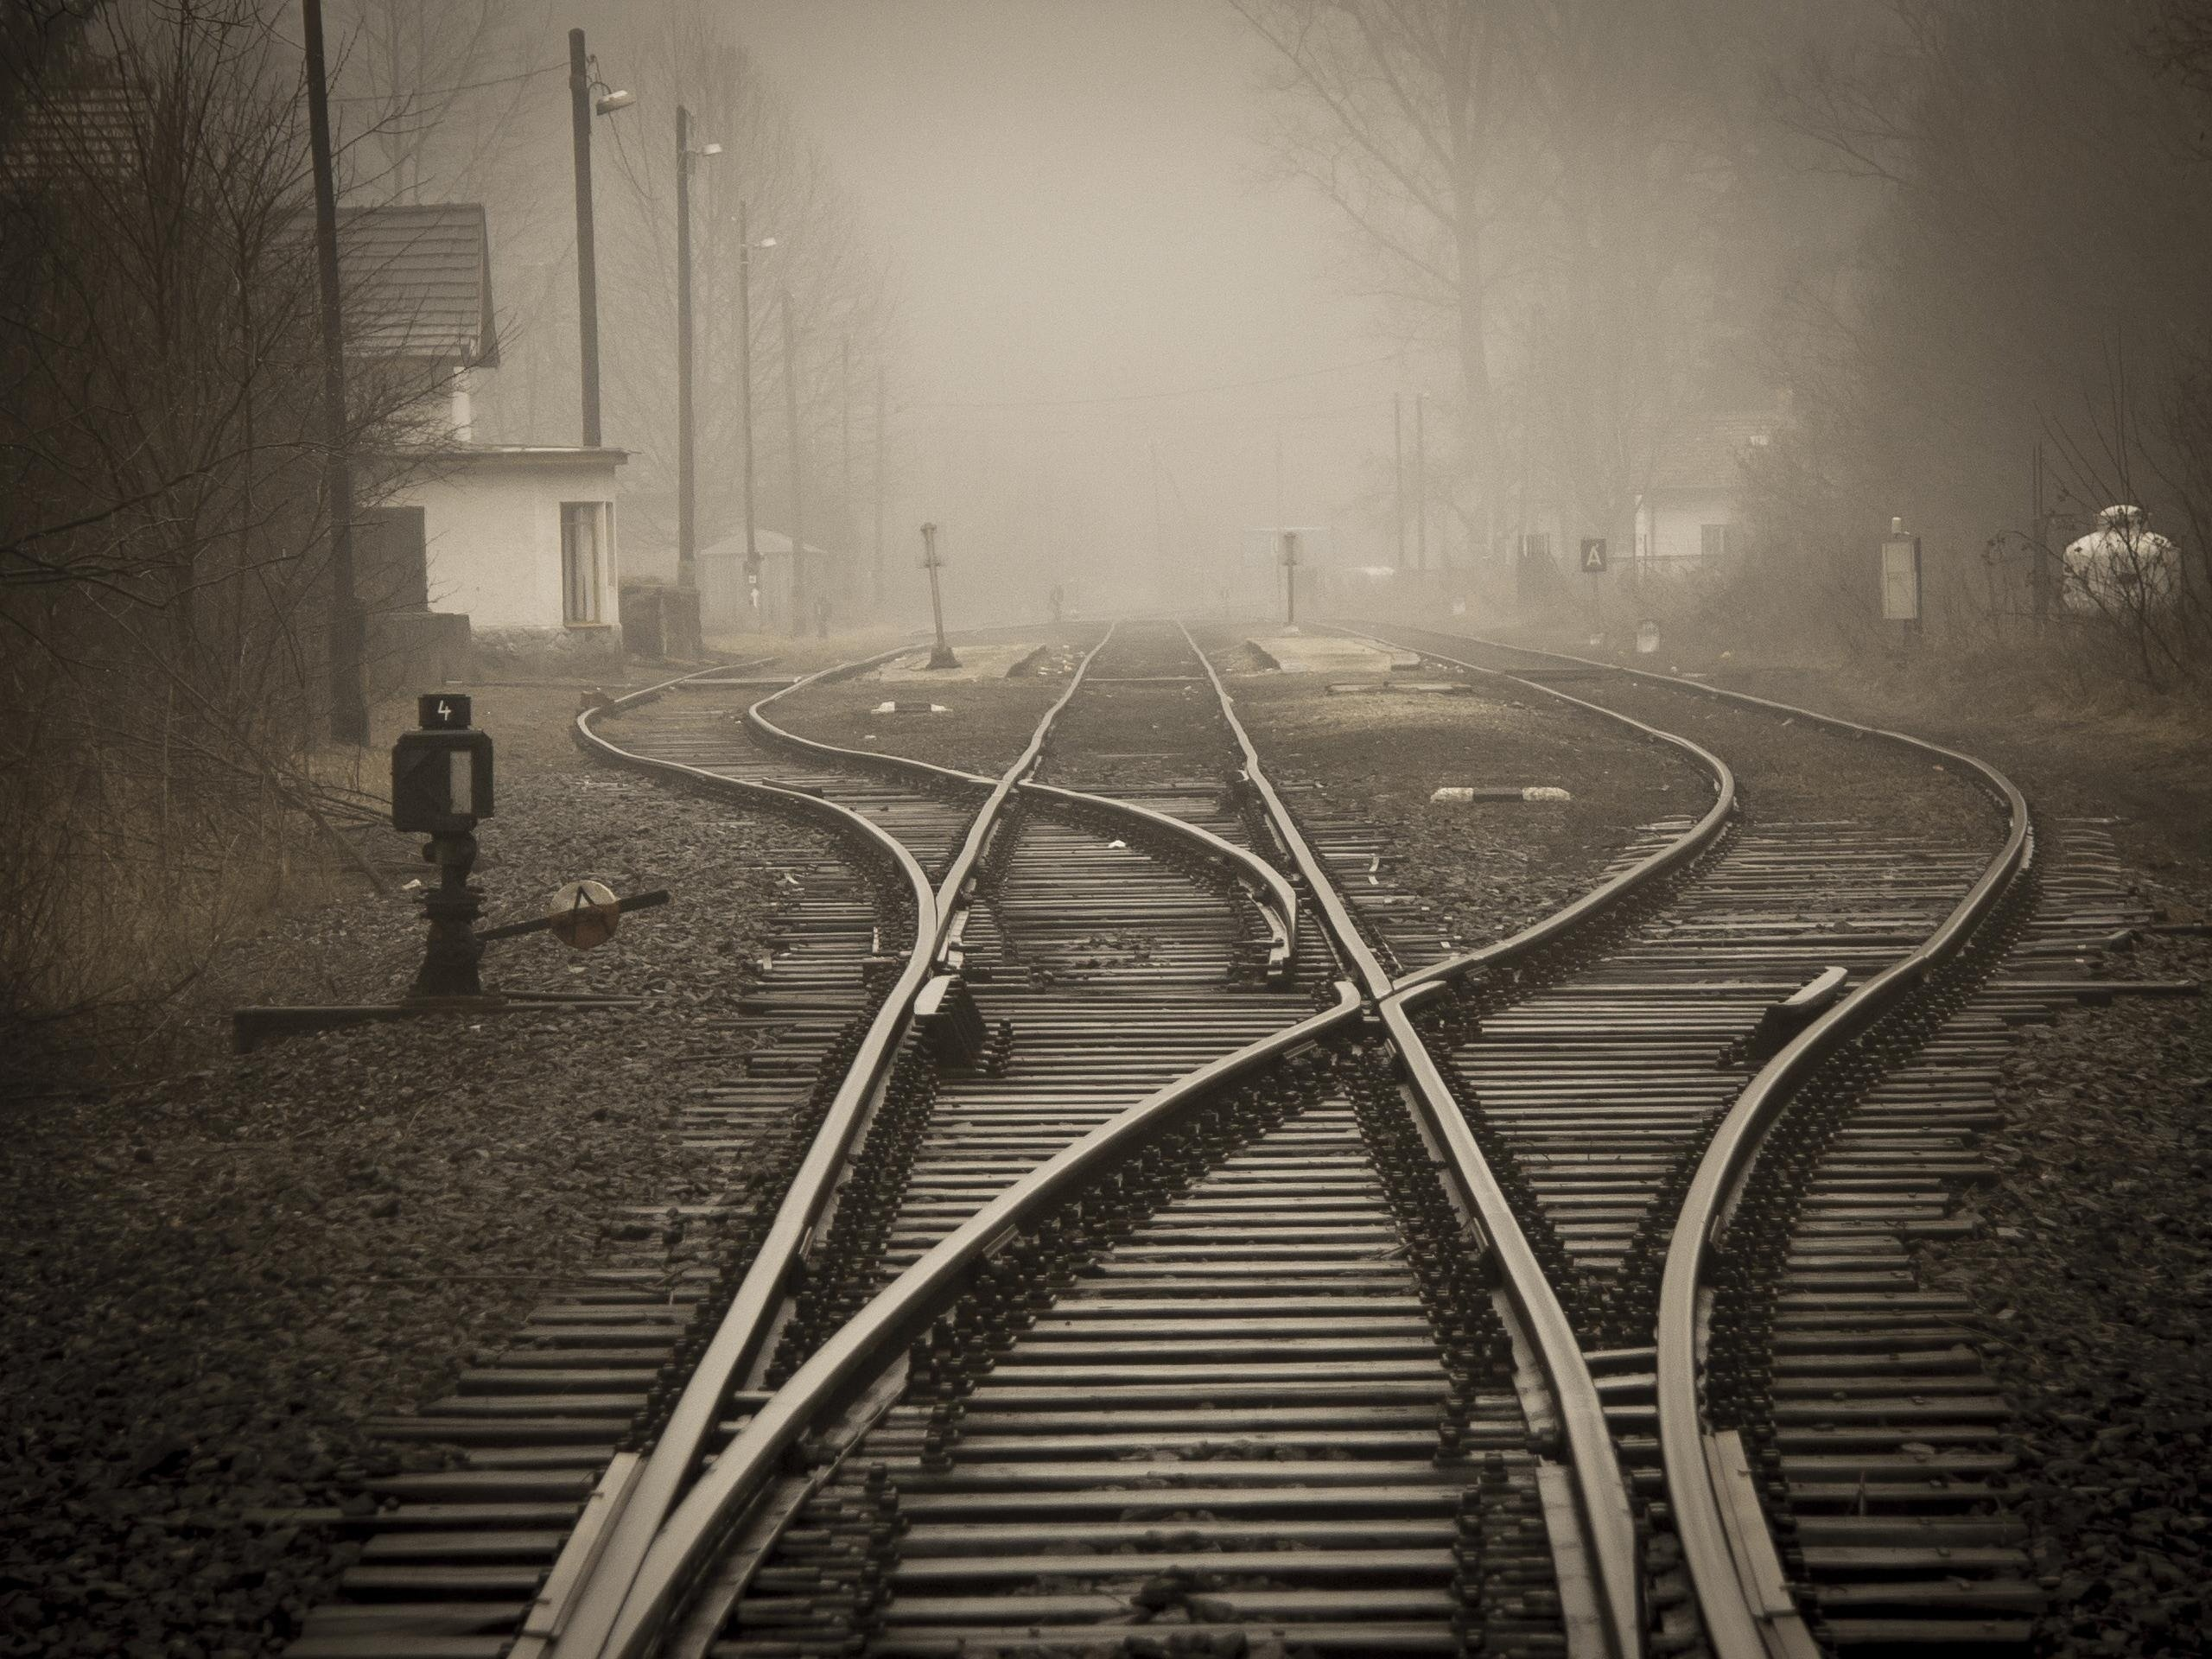 Pictured - An image of railroad tracks in a foggy city | Source: Pexels